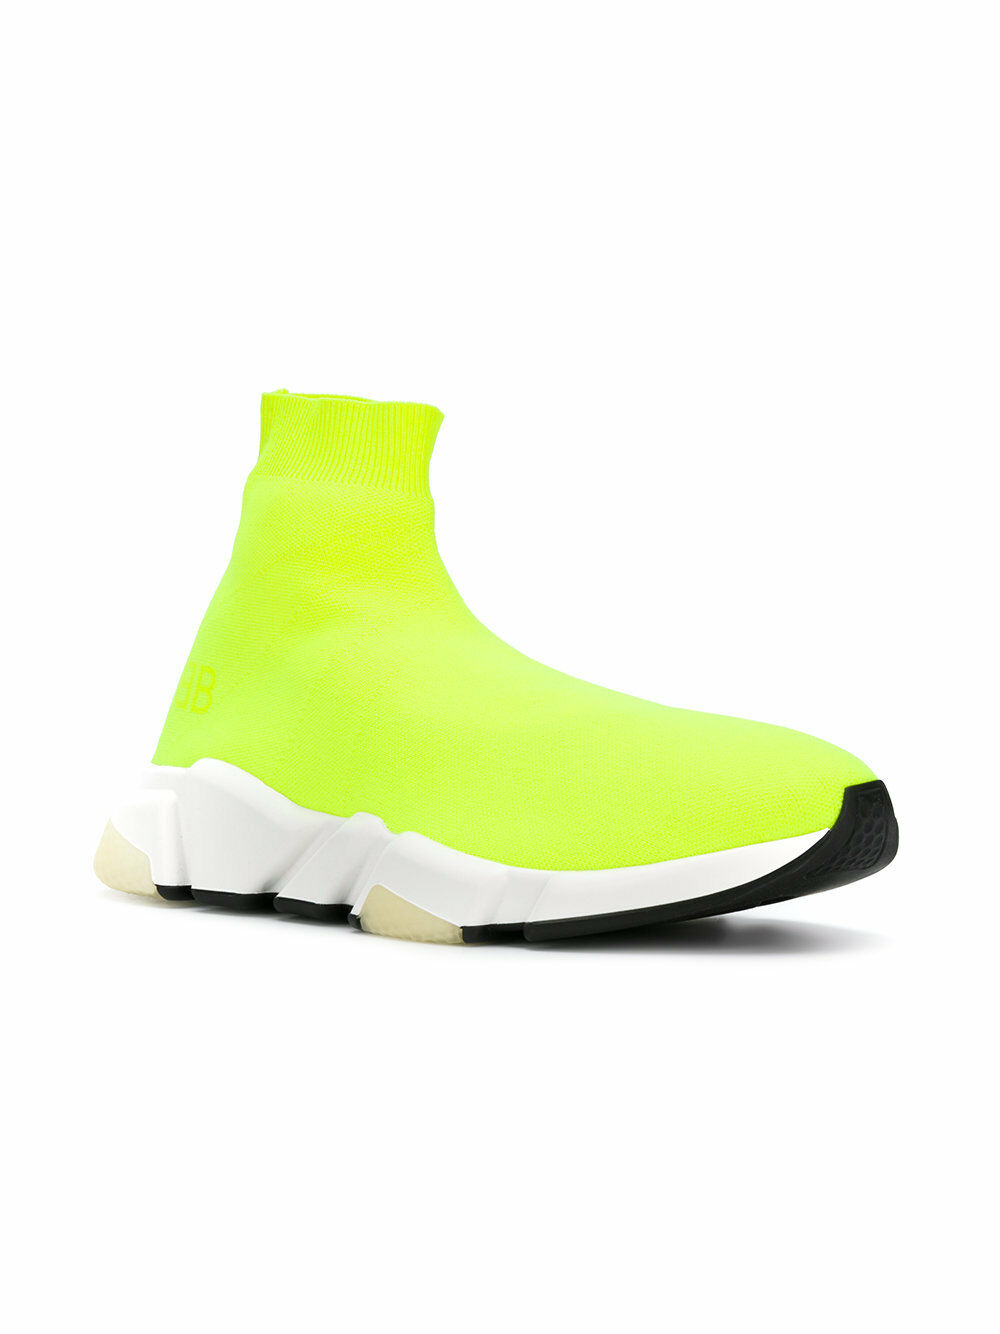 Balenciaga Speed Sock Low Men's Trainers Yellow Fluo